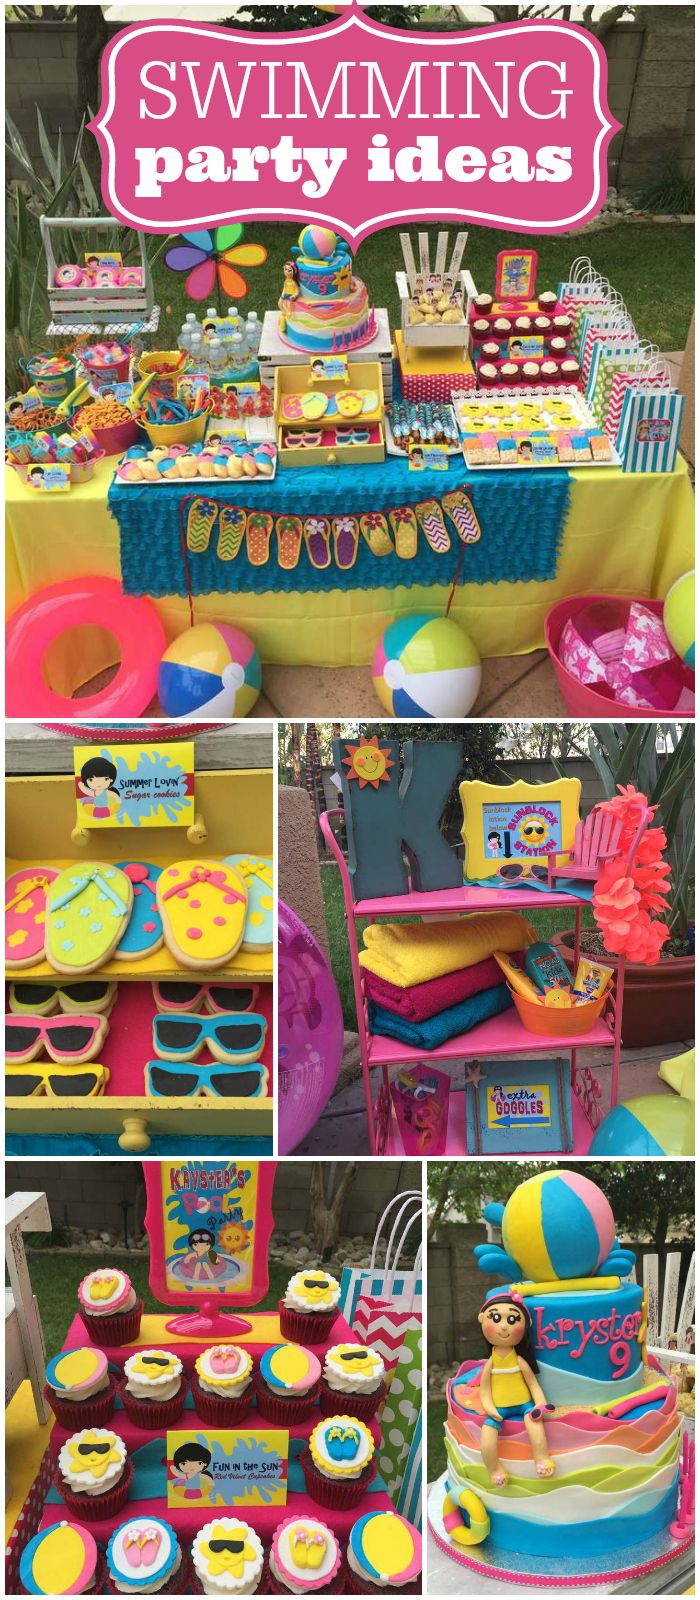 Pool Party Ideas Kids birthday parties singapore style pool party kidsbirthday Such An Amazing Cake At This Swimming Party See More Party Ideas At Catchmyparty